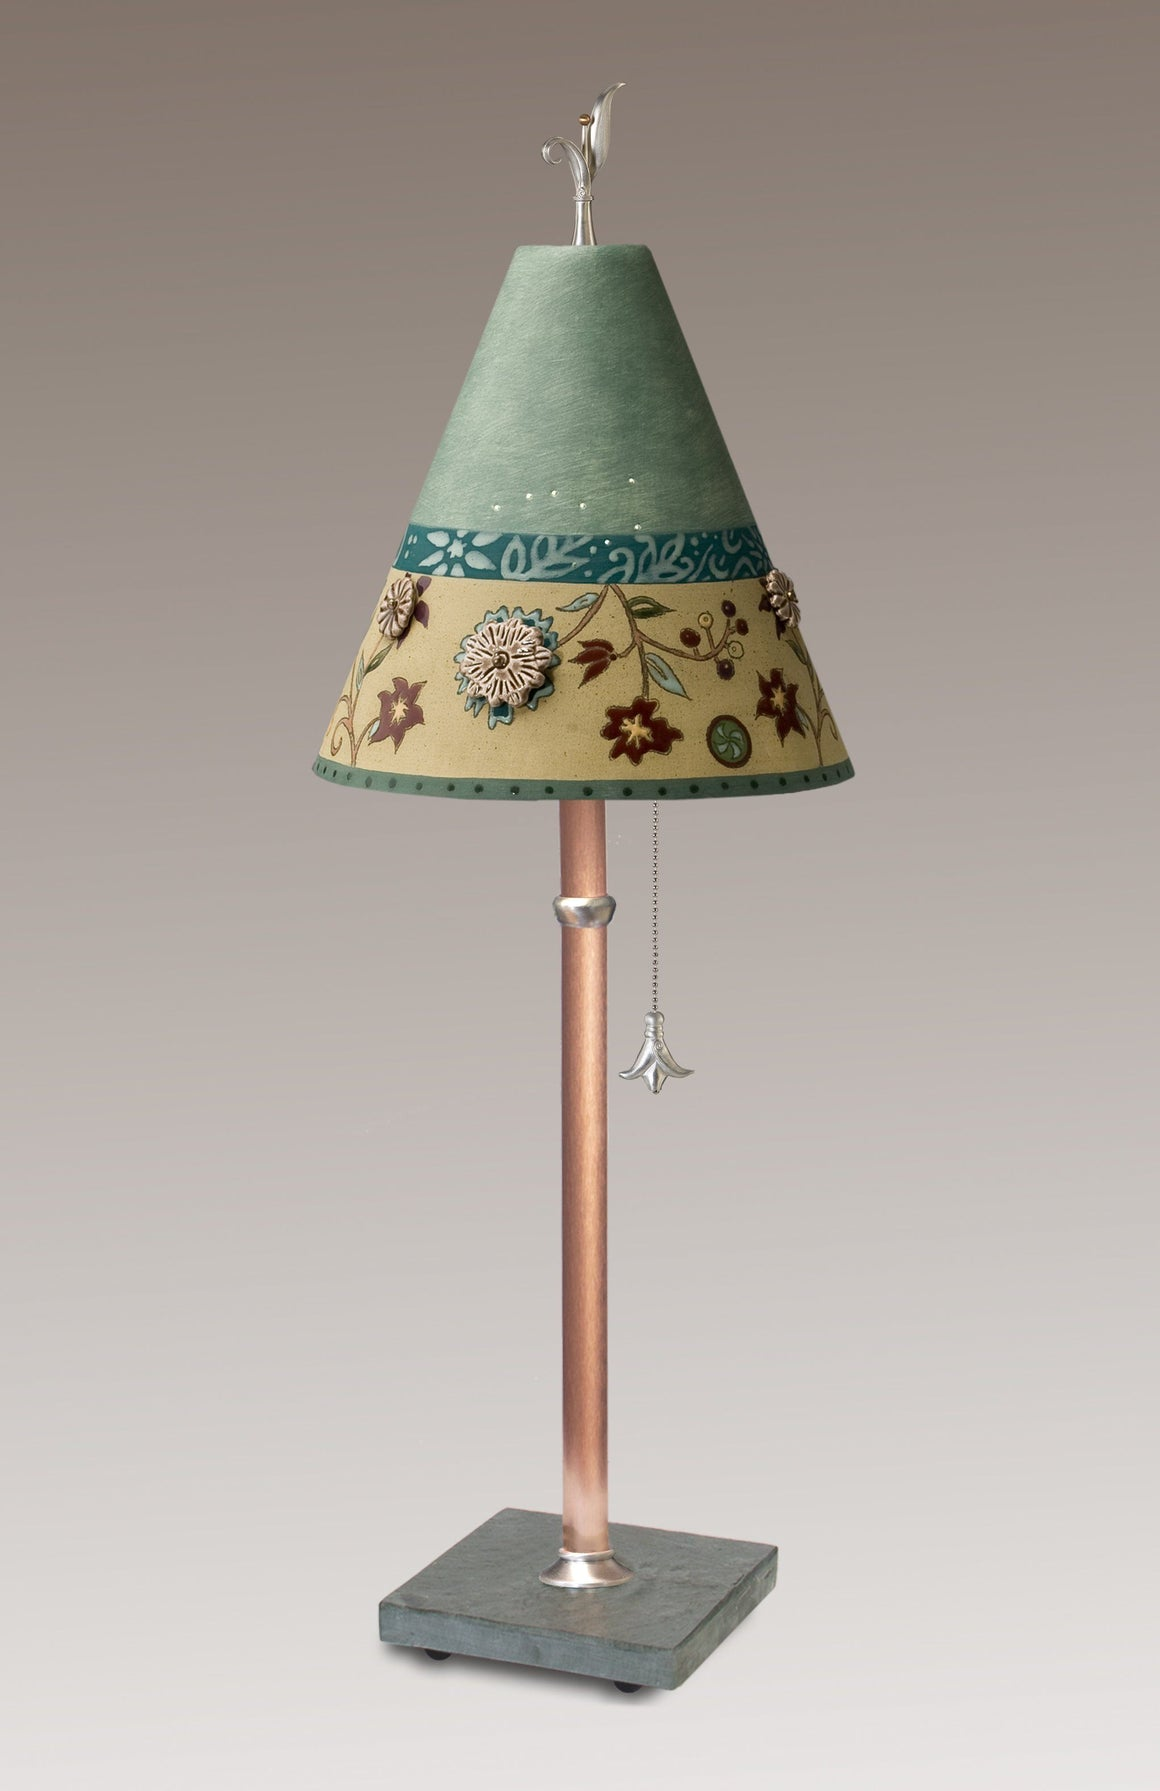 Ceramic-Shaded Copper Table Lamp with Small Conical Ceramic Shade in Eden Sea Glass